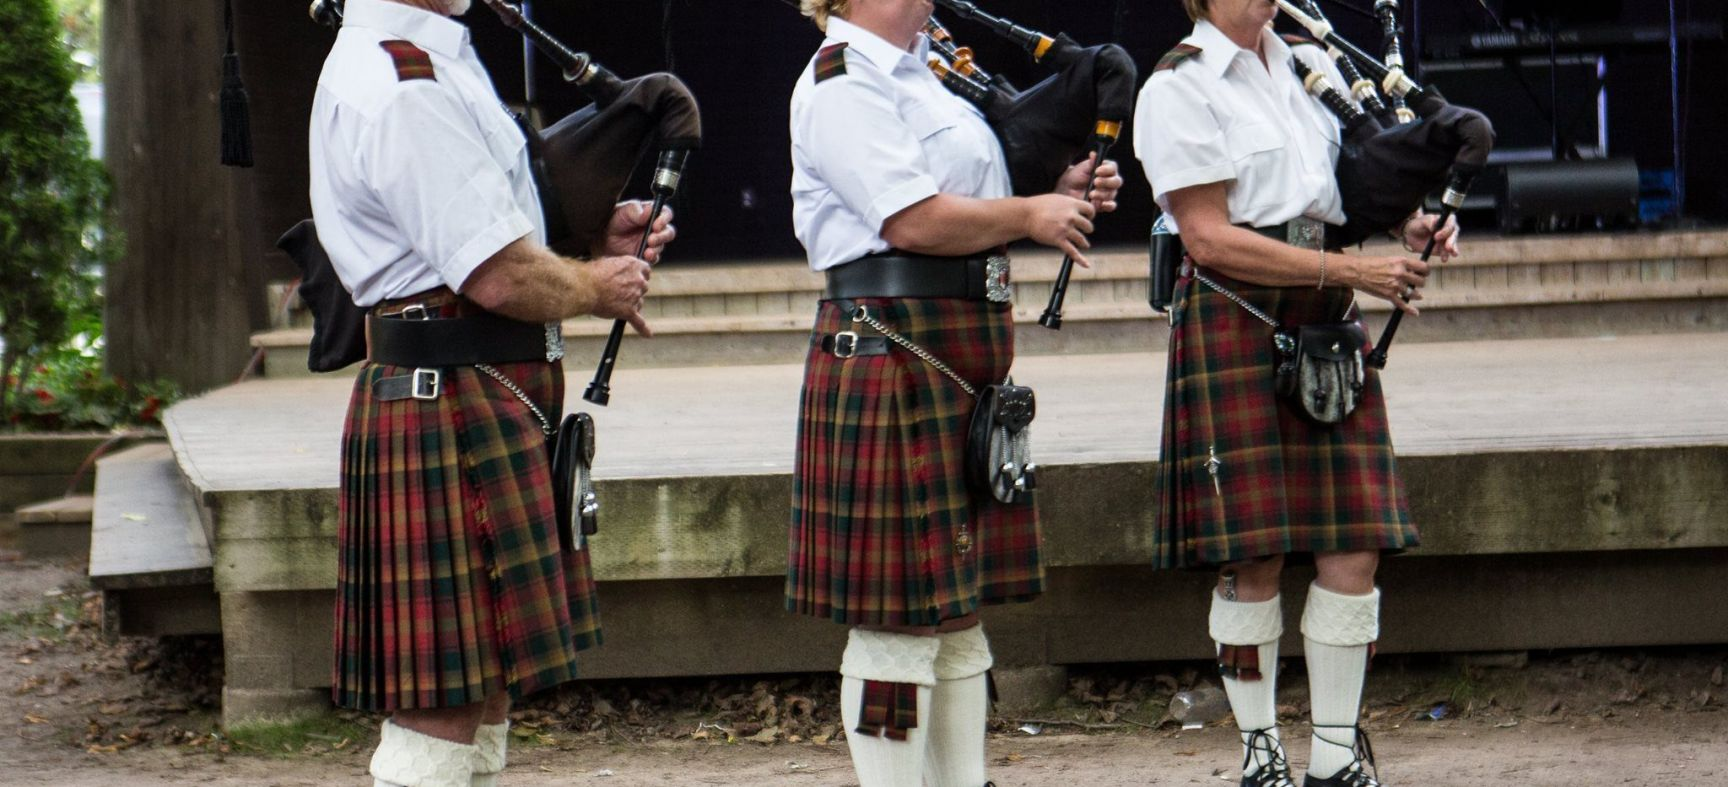 Pipers warming up. John Cavers Photography